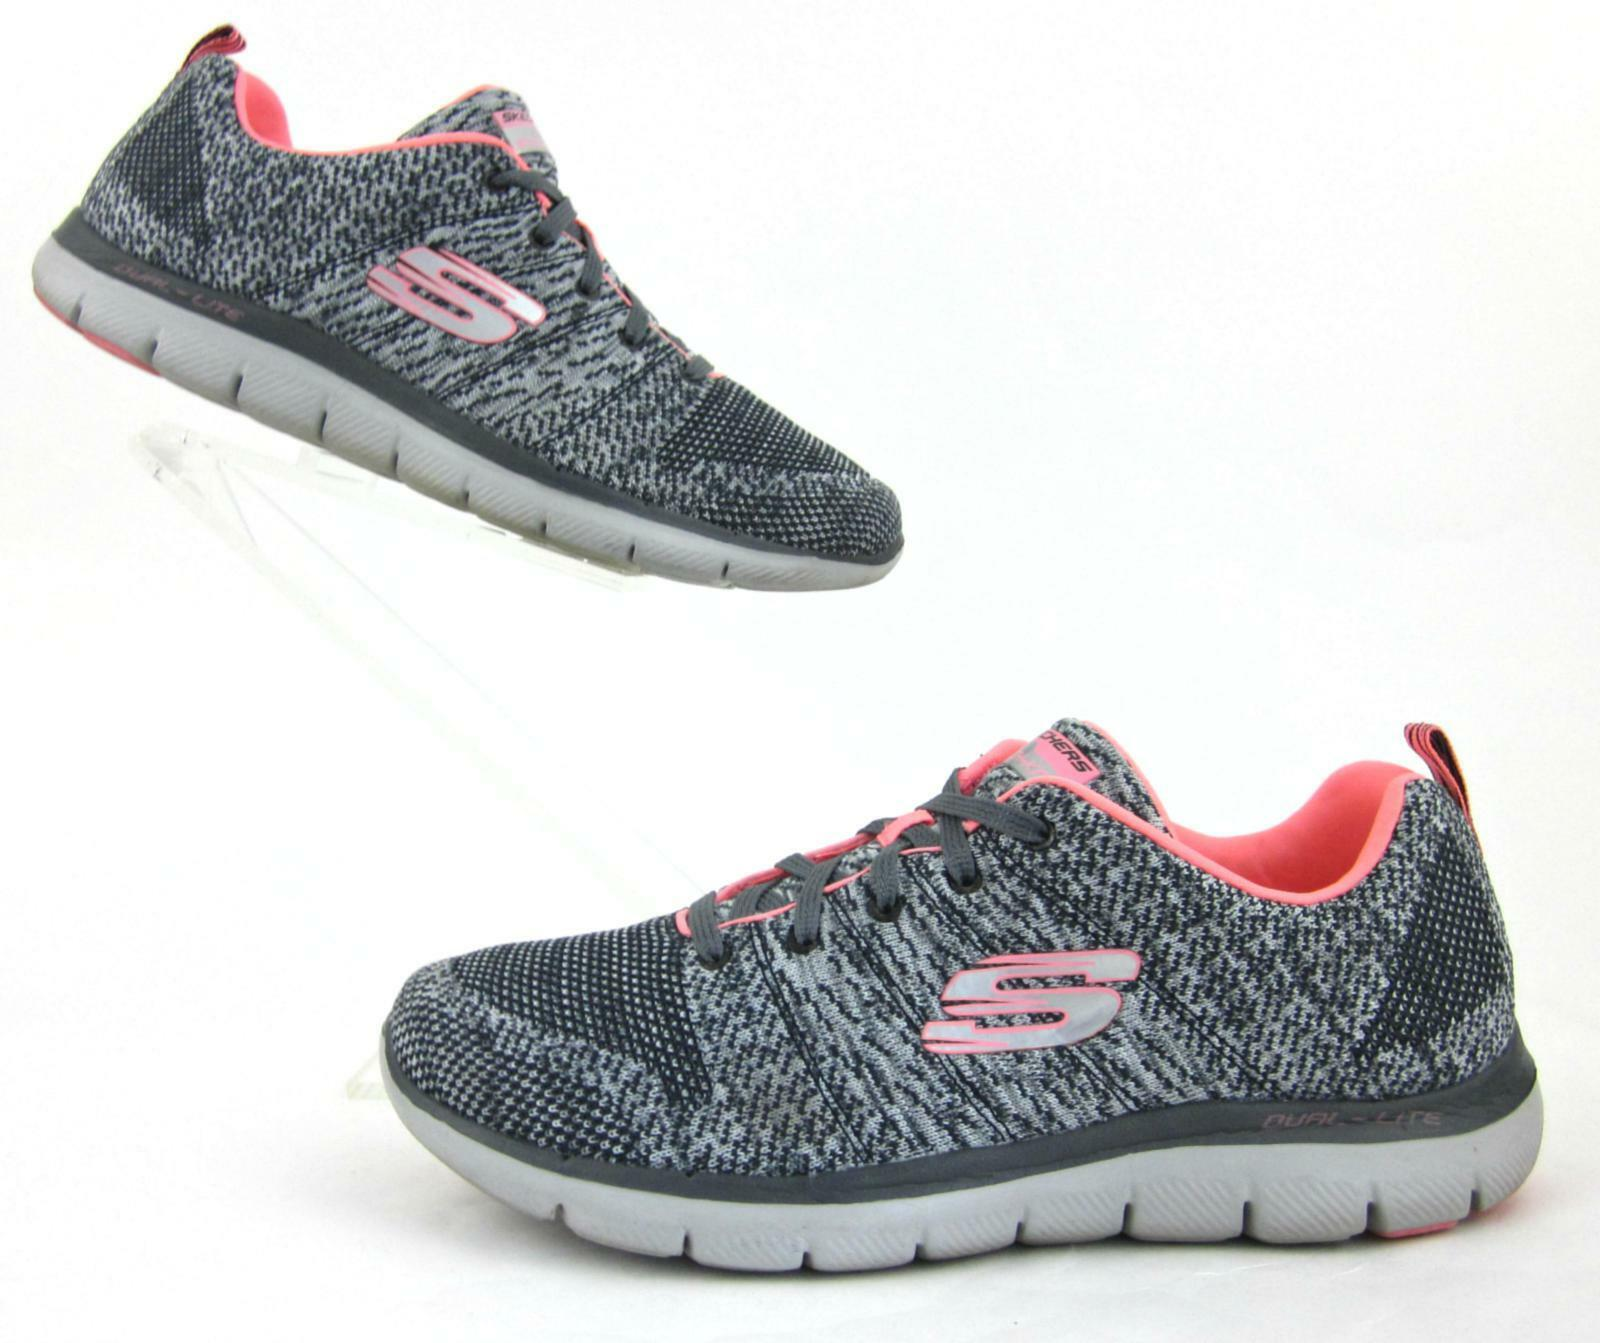 Skechers Flex Appeal 2.0 High Energy Sneakers Flat Knit Charcoal   Coral US 10